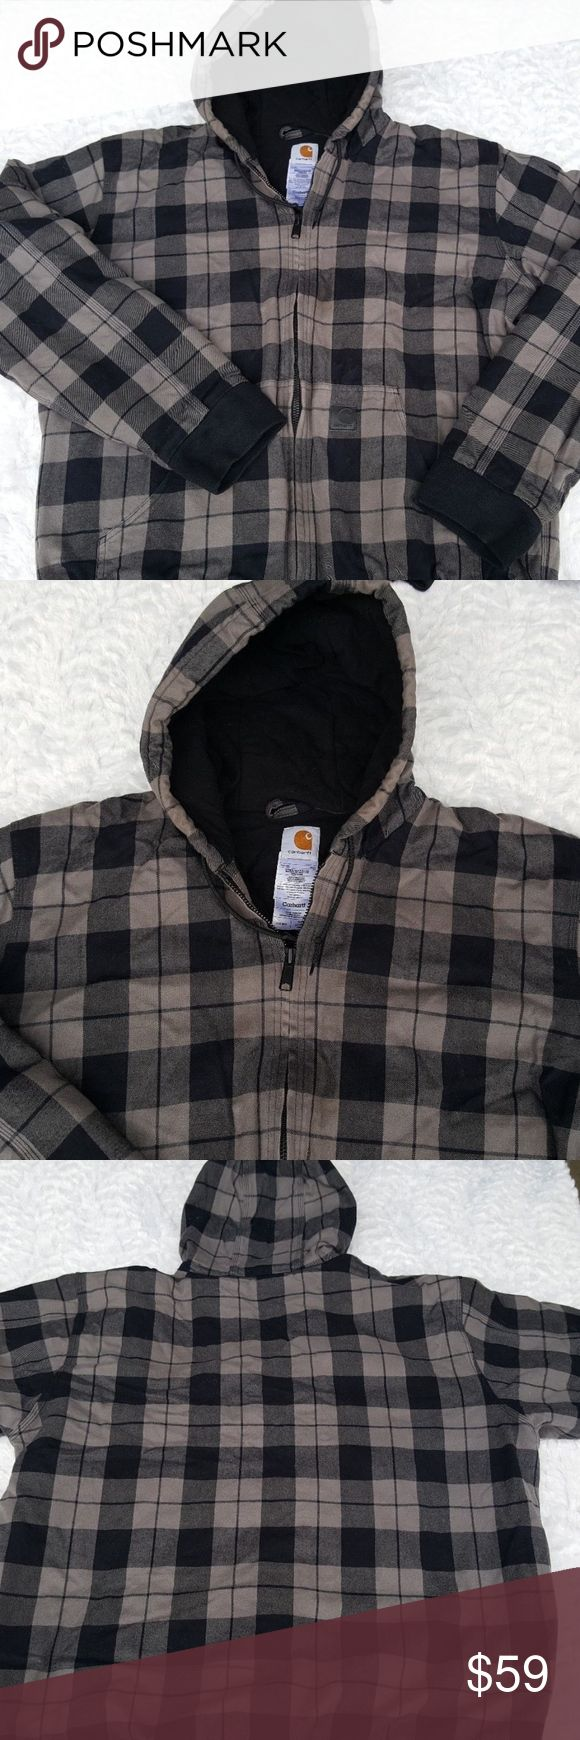 Mens Carhartt XL Tall Black & Gray Plaid Coat Mens Carhartt XL Tall Black Gray Plaid Heavy Winter Jacket Coat with Hood  Type: Mens Outerwear Style: Jacket / Coat Brand: Carhartt Material: 100% Cotton. Lining 100% Polyester Color: Black, Gray  This is a thicker, winter style coat / jacket Carhartt Jackets & Coats